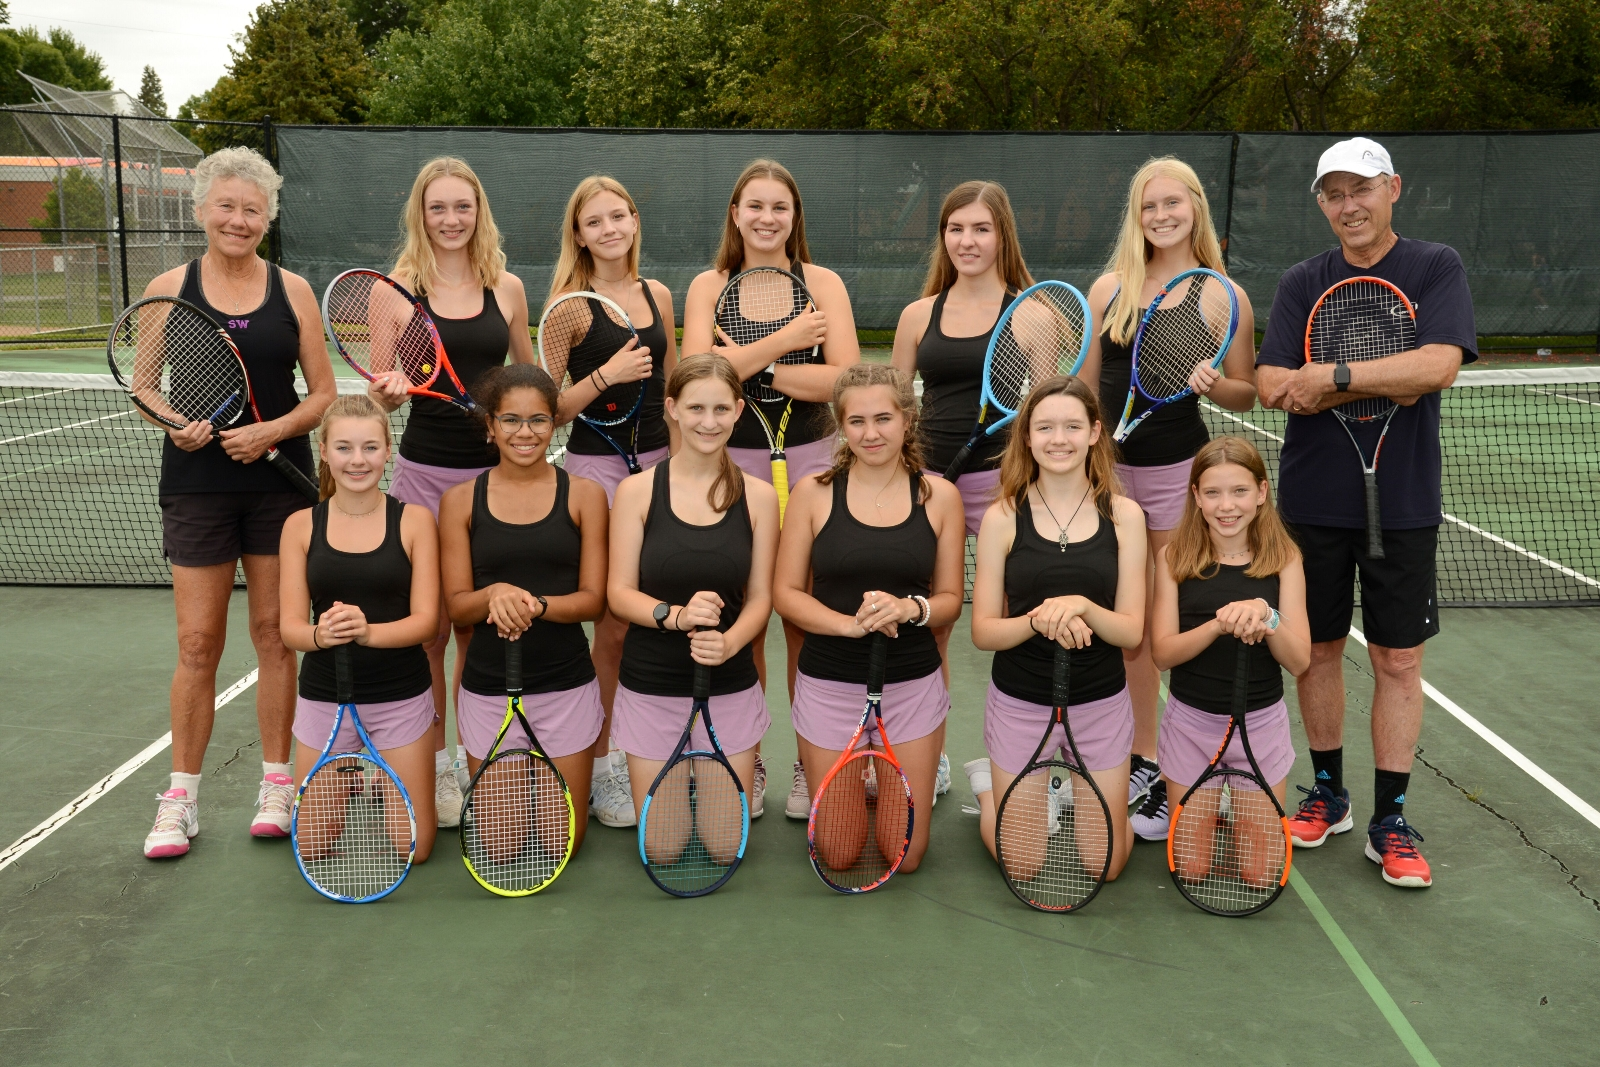 Interested in Girls Tennis 2020?